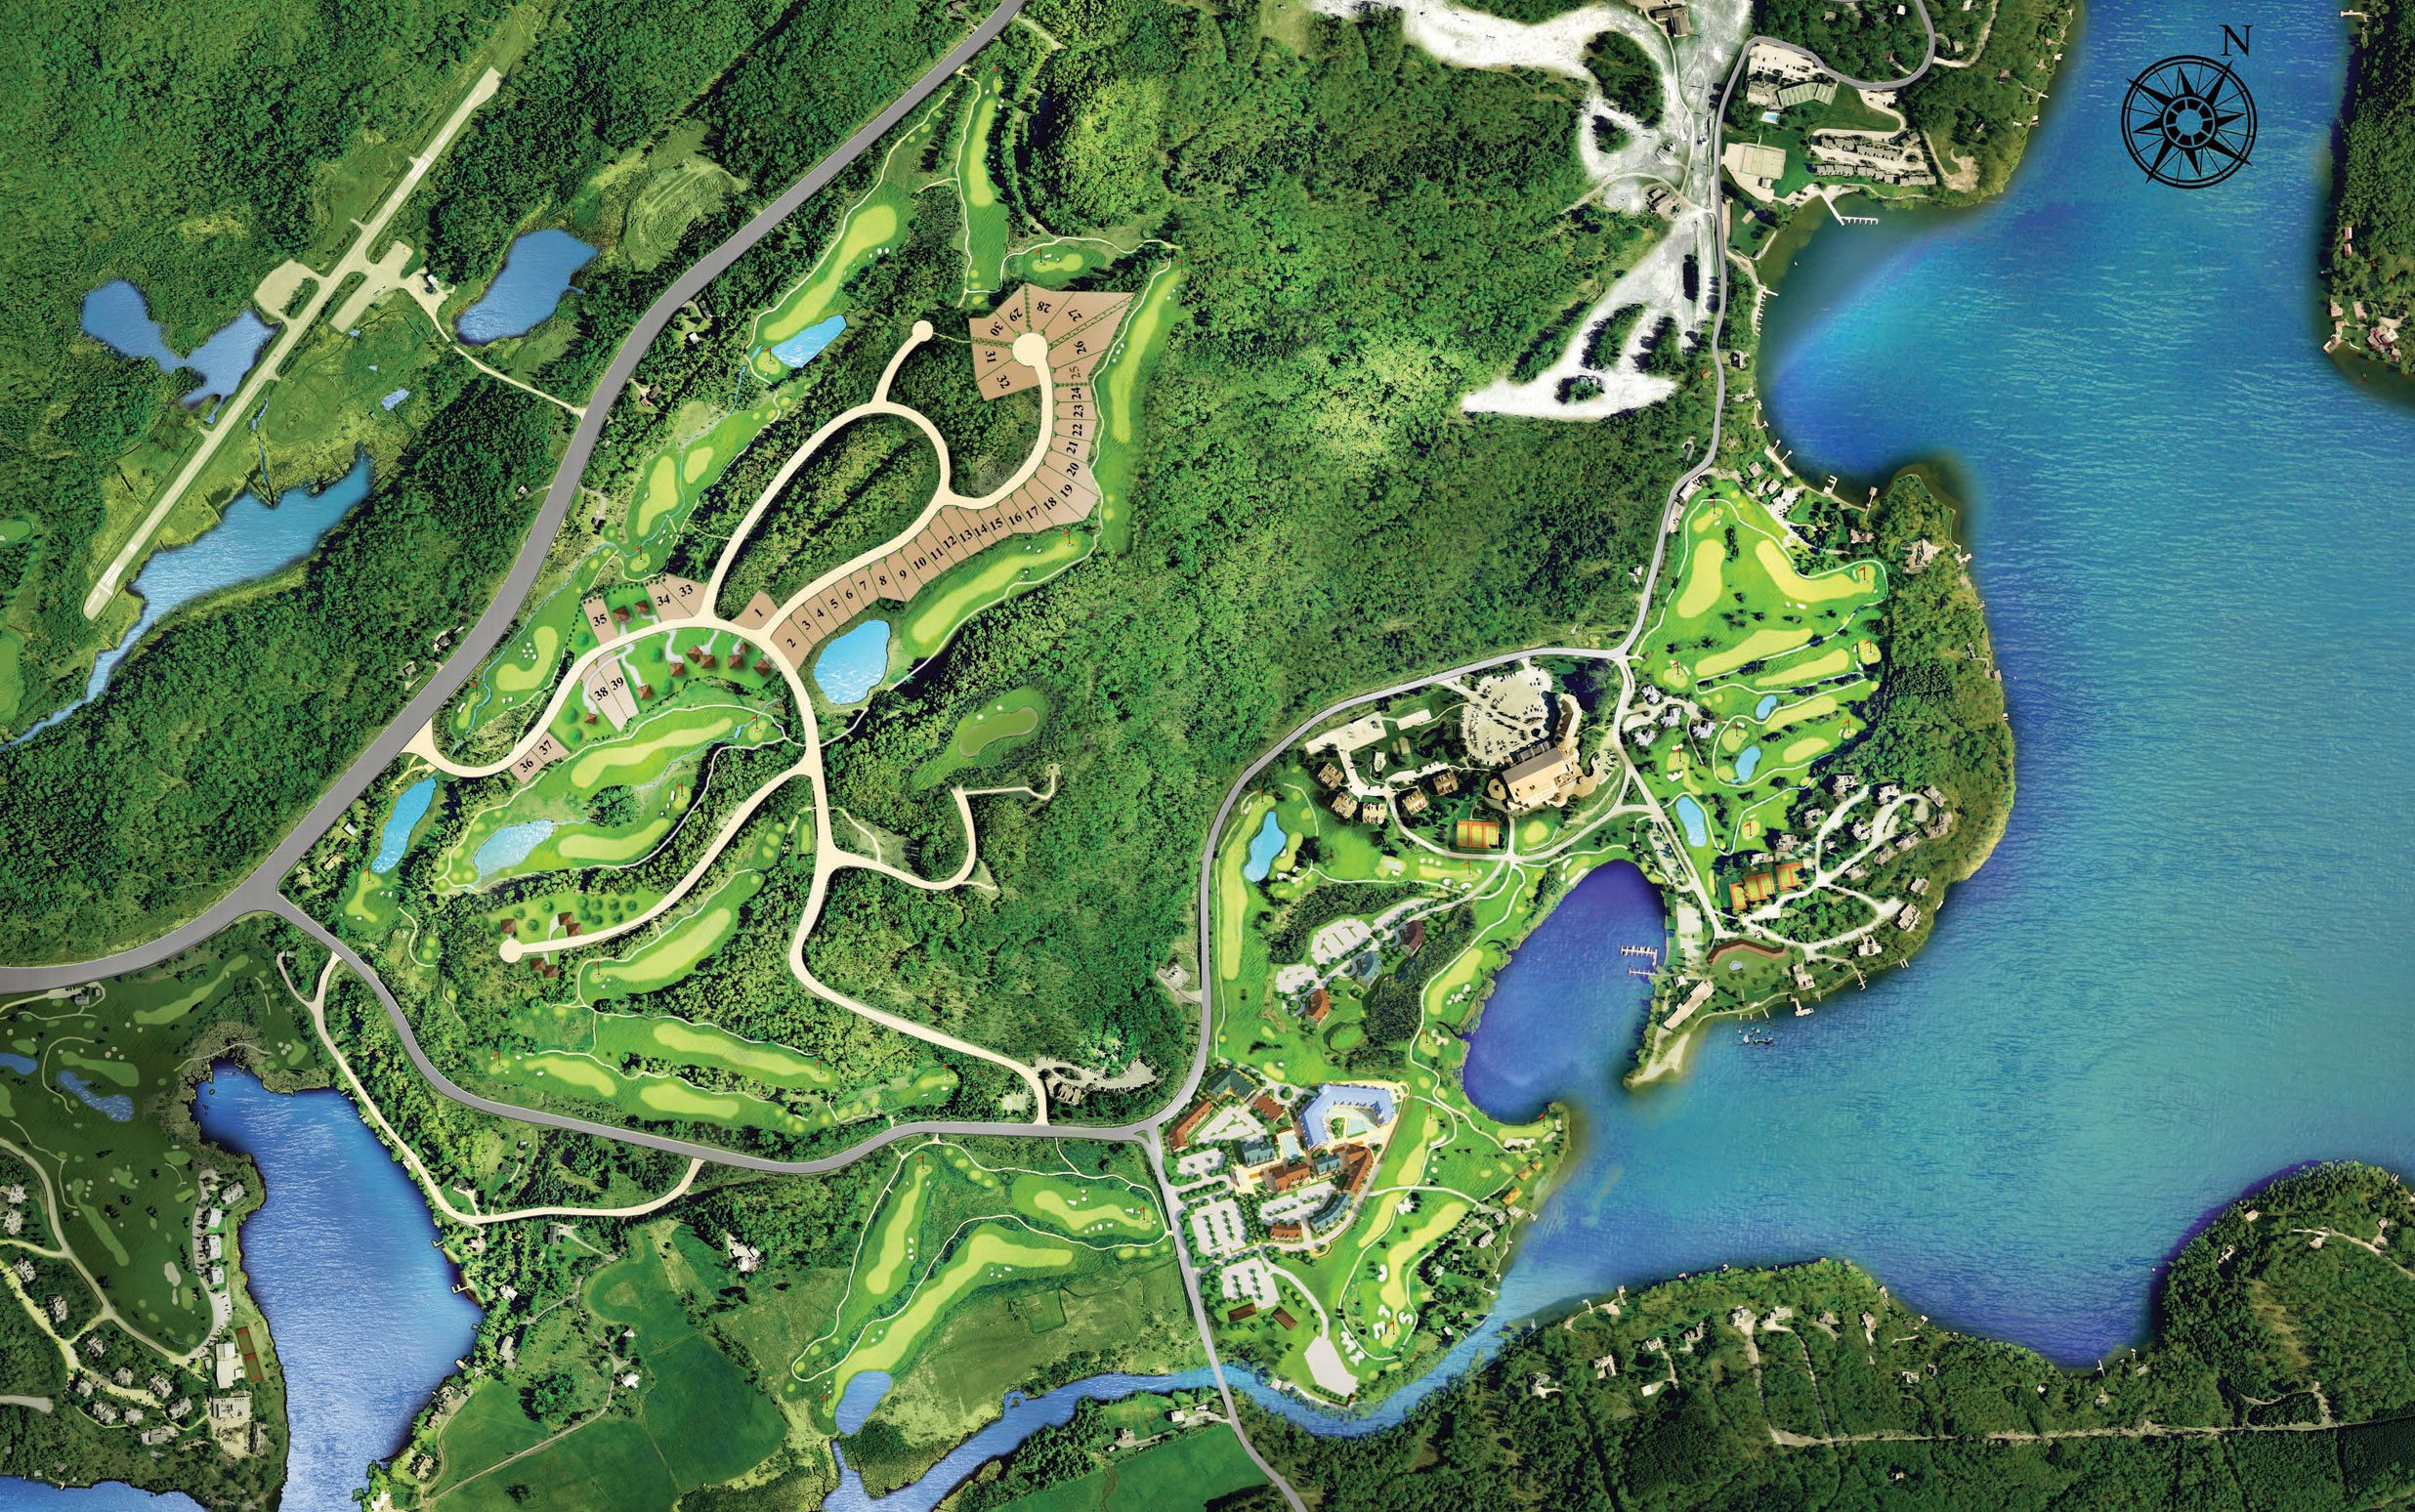 Deerhurst Resort Map Terrain Map View   Lakeside Lodge at Deerhurst Resort Deerhurst Resort Map